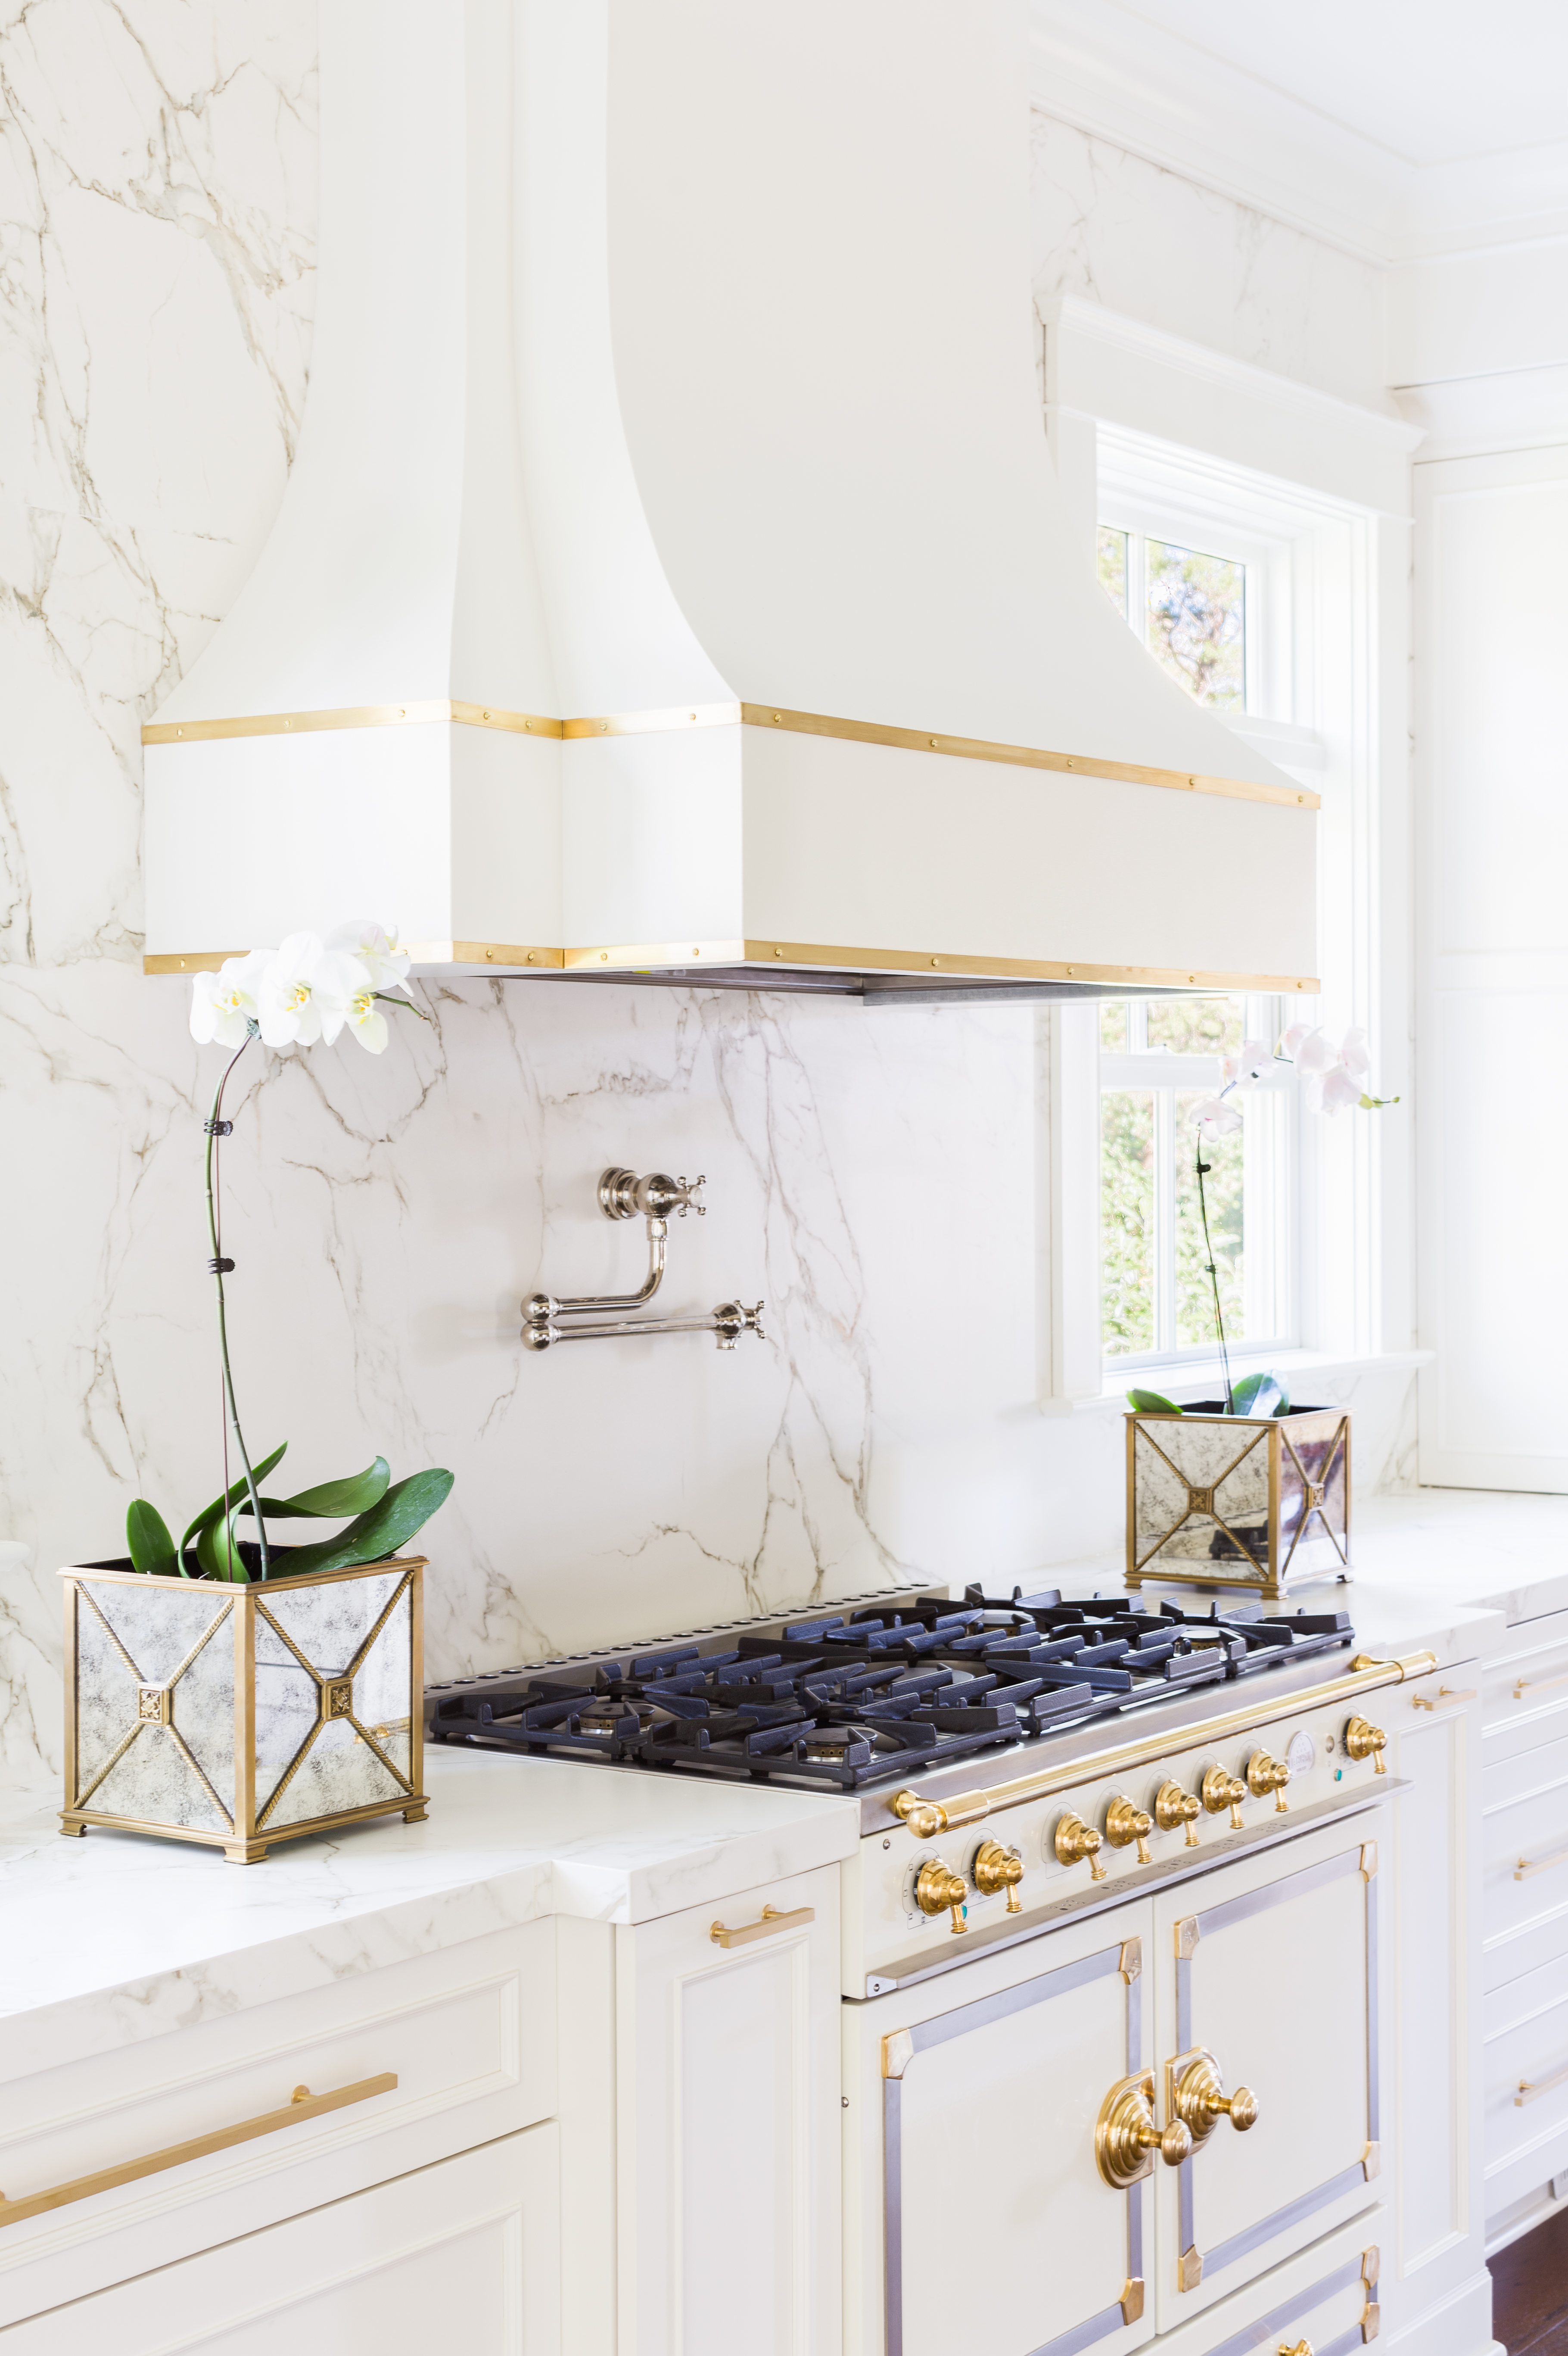 7 Tips For Decorating With White Stainless Steel Appliances Hunker